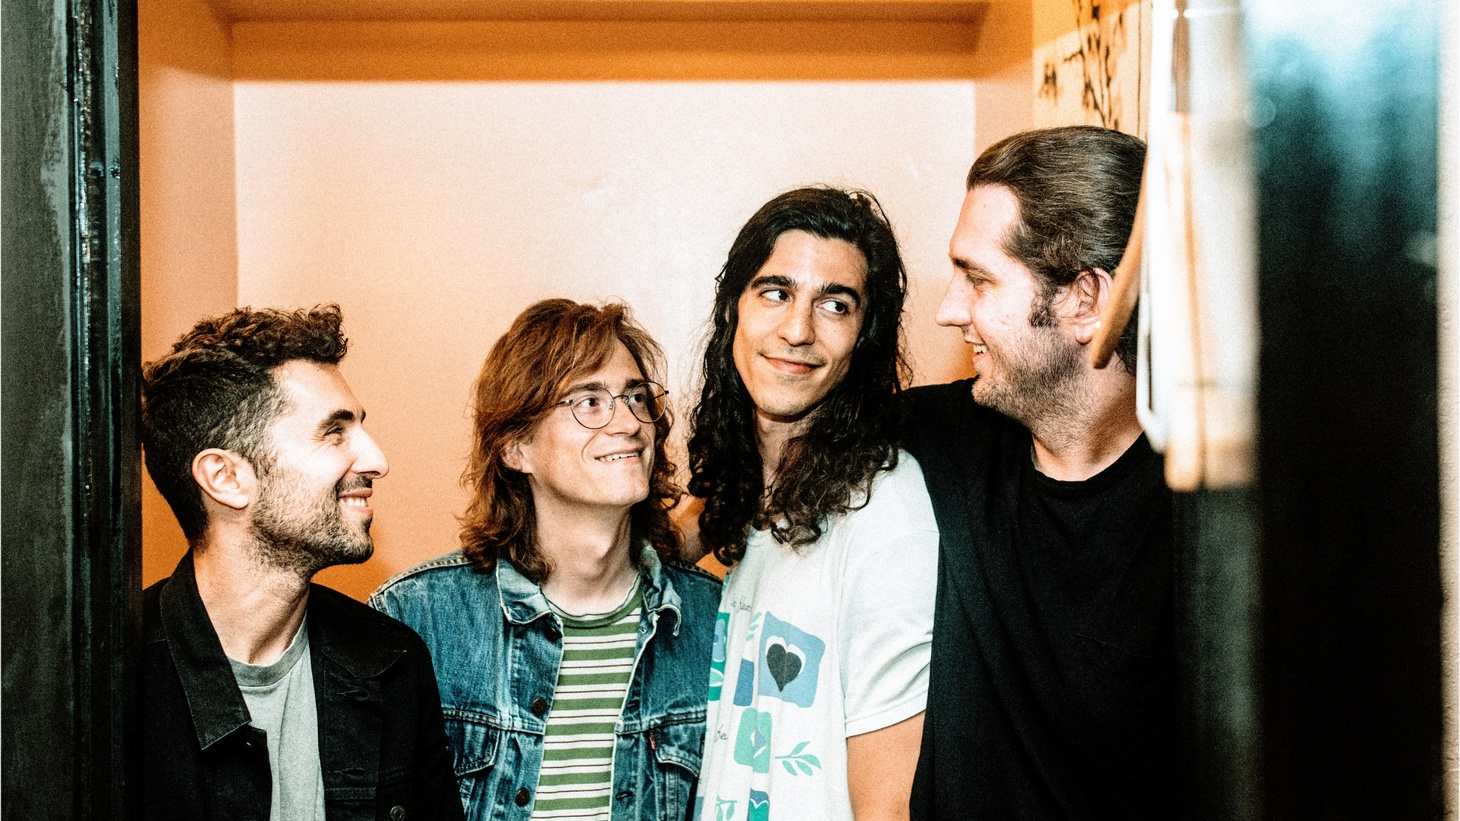 """Collaborative Highland Park indie-pop outfit Sure Sure take a grassroots approach to making music in their house-turned-studio. """"Lie Lie Lie"""" is a sunny song about a bad habit."""